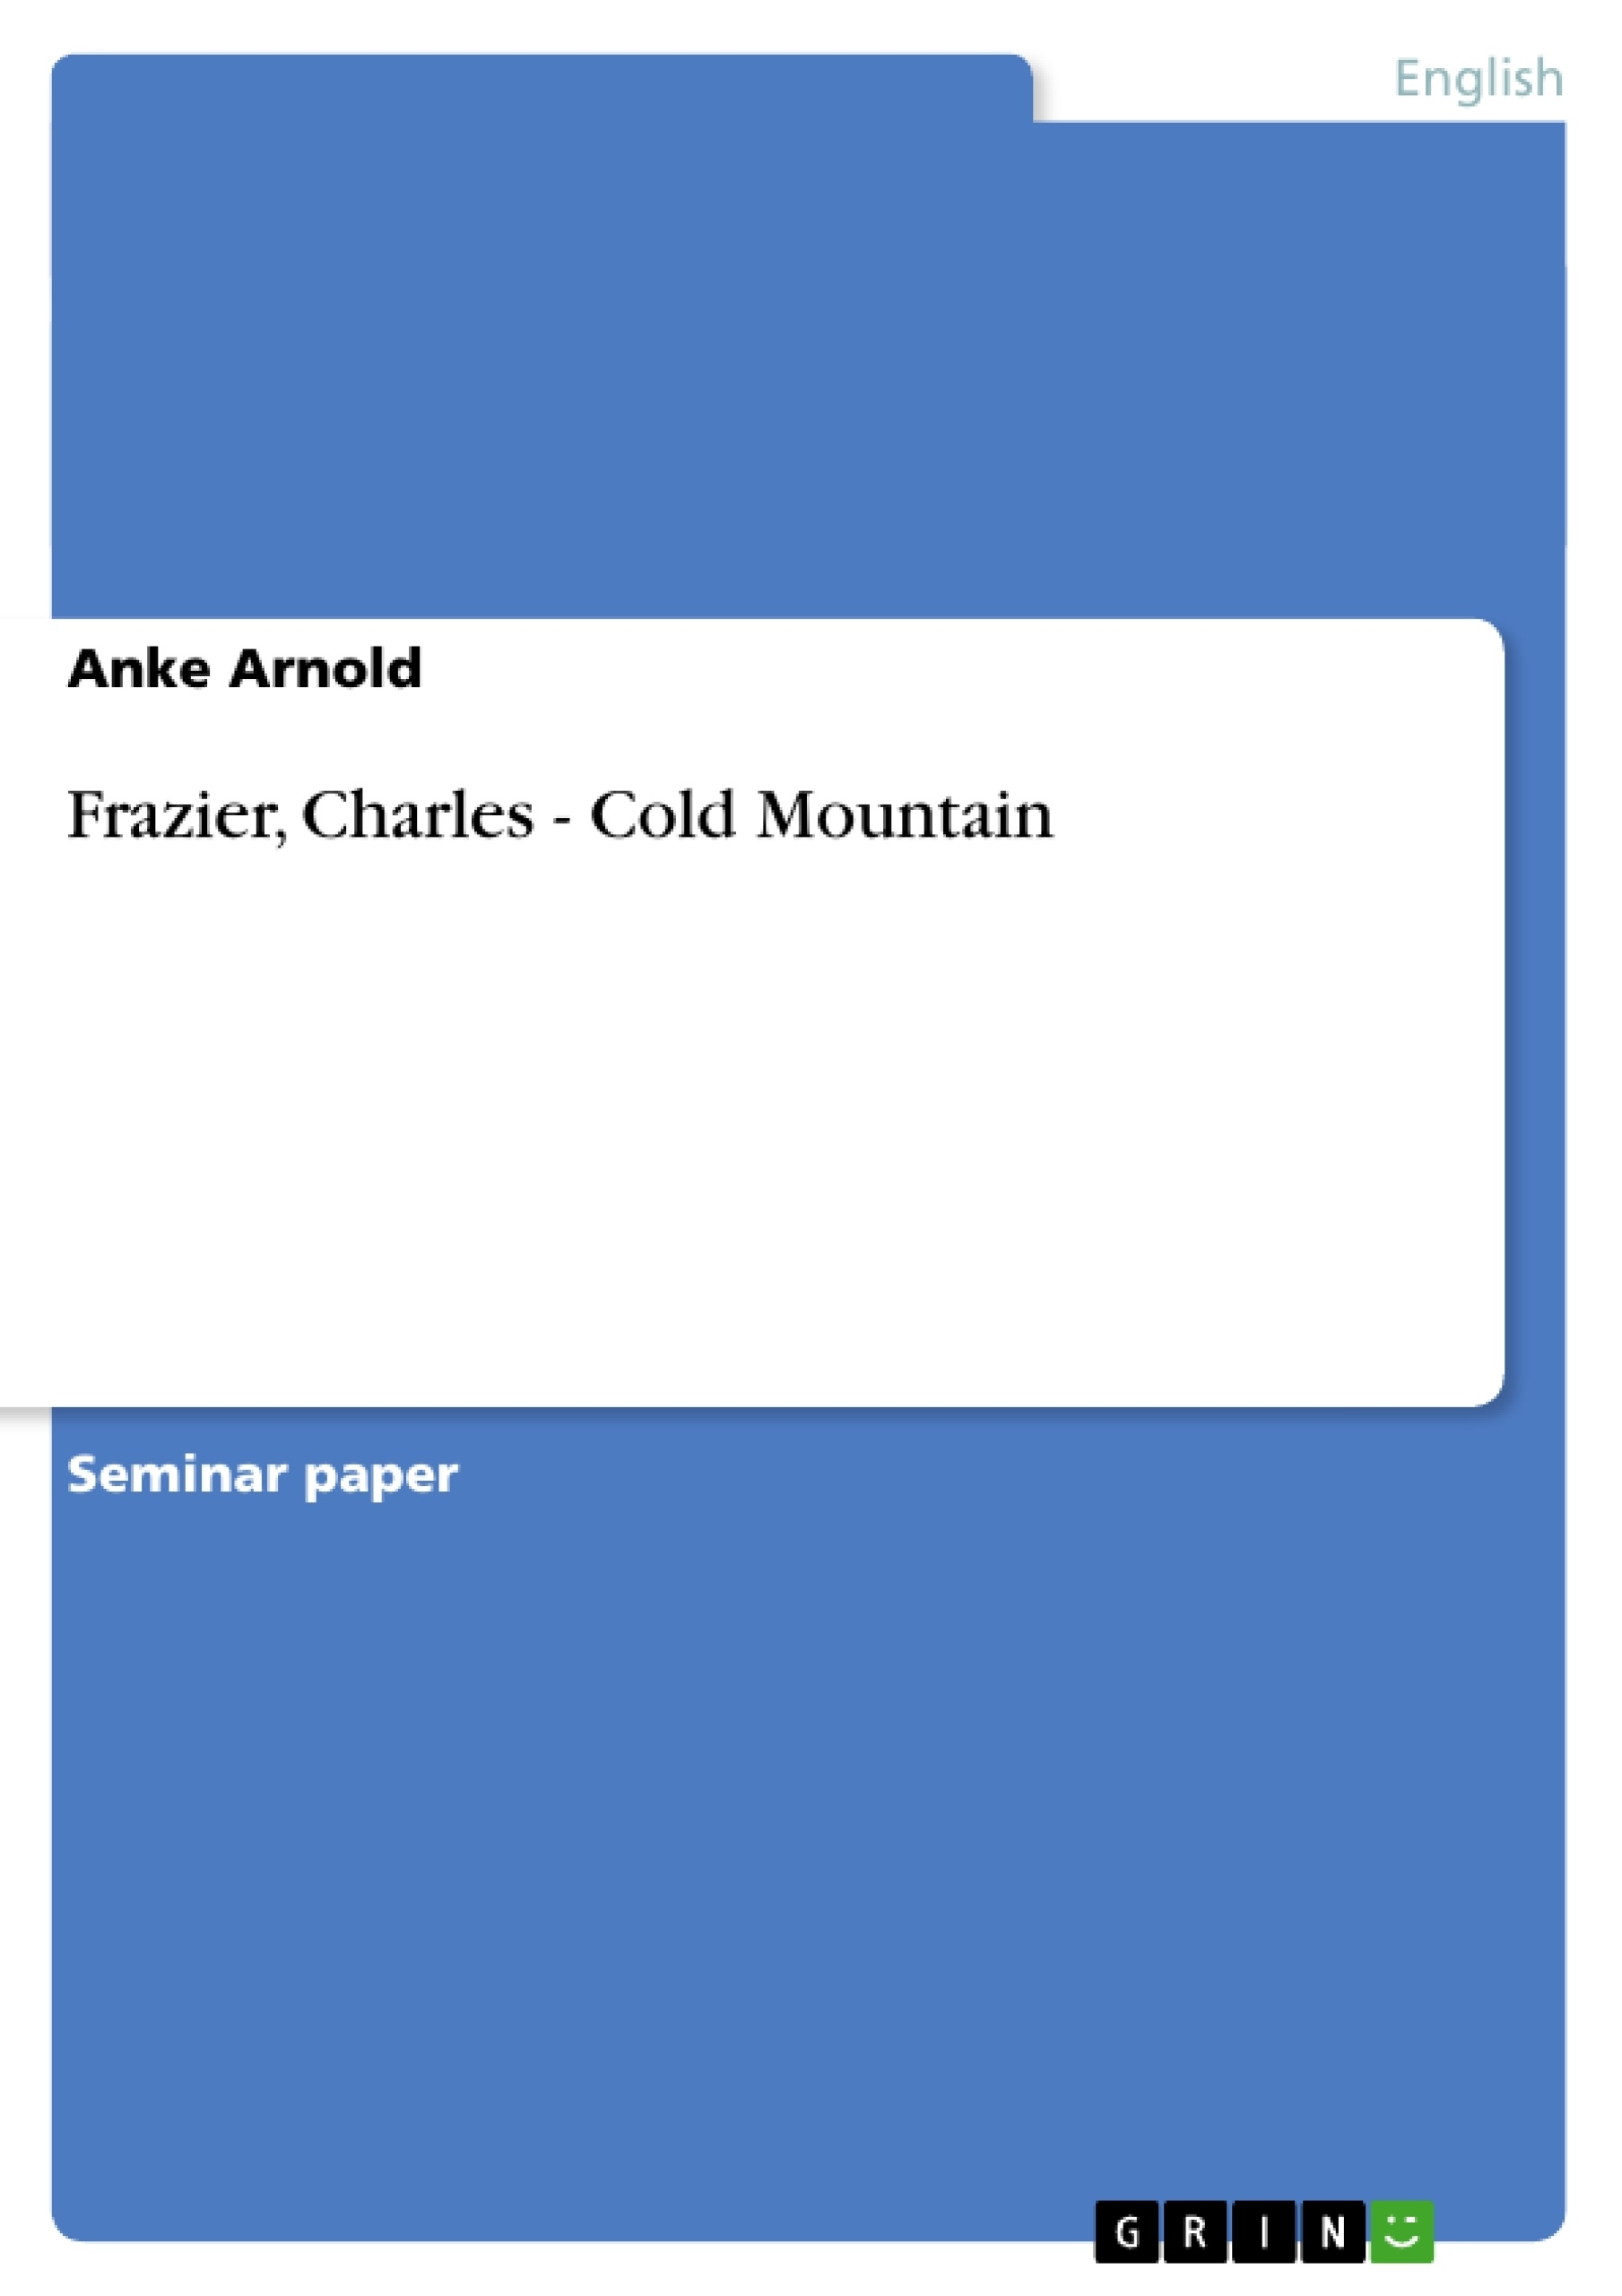 frazier charles cold mountain publish your master s thesis frazier charles cold mountain publish your master s thesis bachelor s thesis essay or term paper